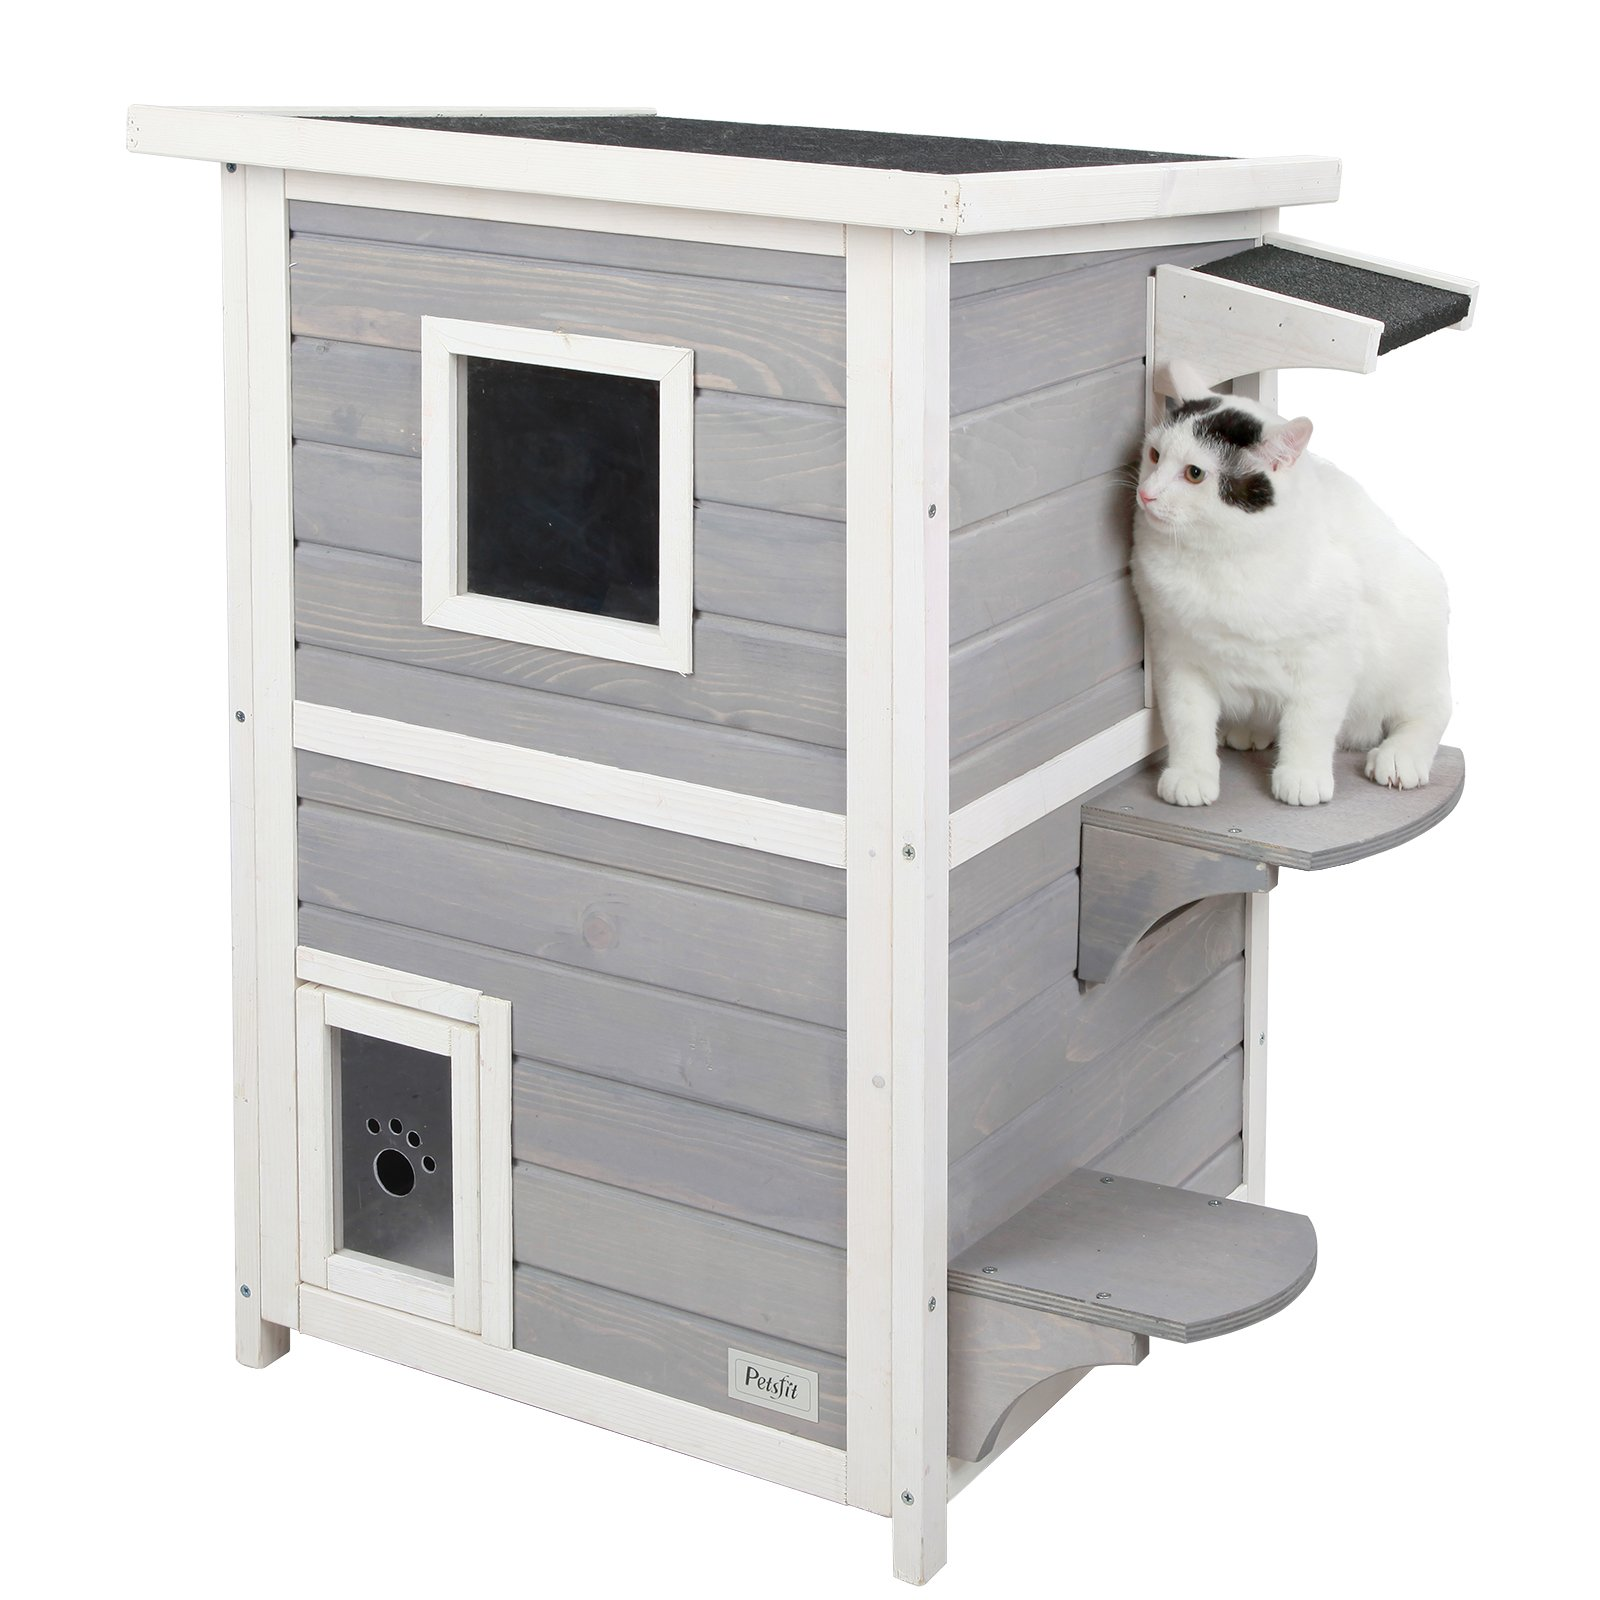 Petsfit 2-Story Weatherproof Outdoor Kitty Cat House/Condo/Shelter with Escape Door 20″ Lx20 Wx32 H